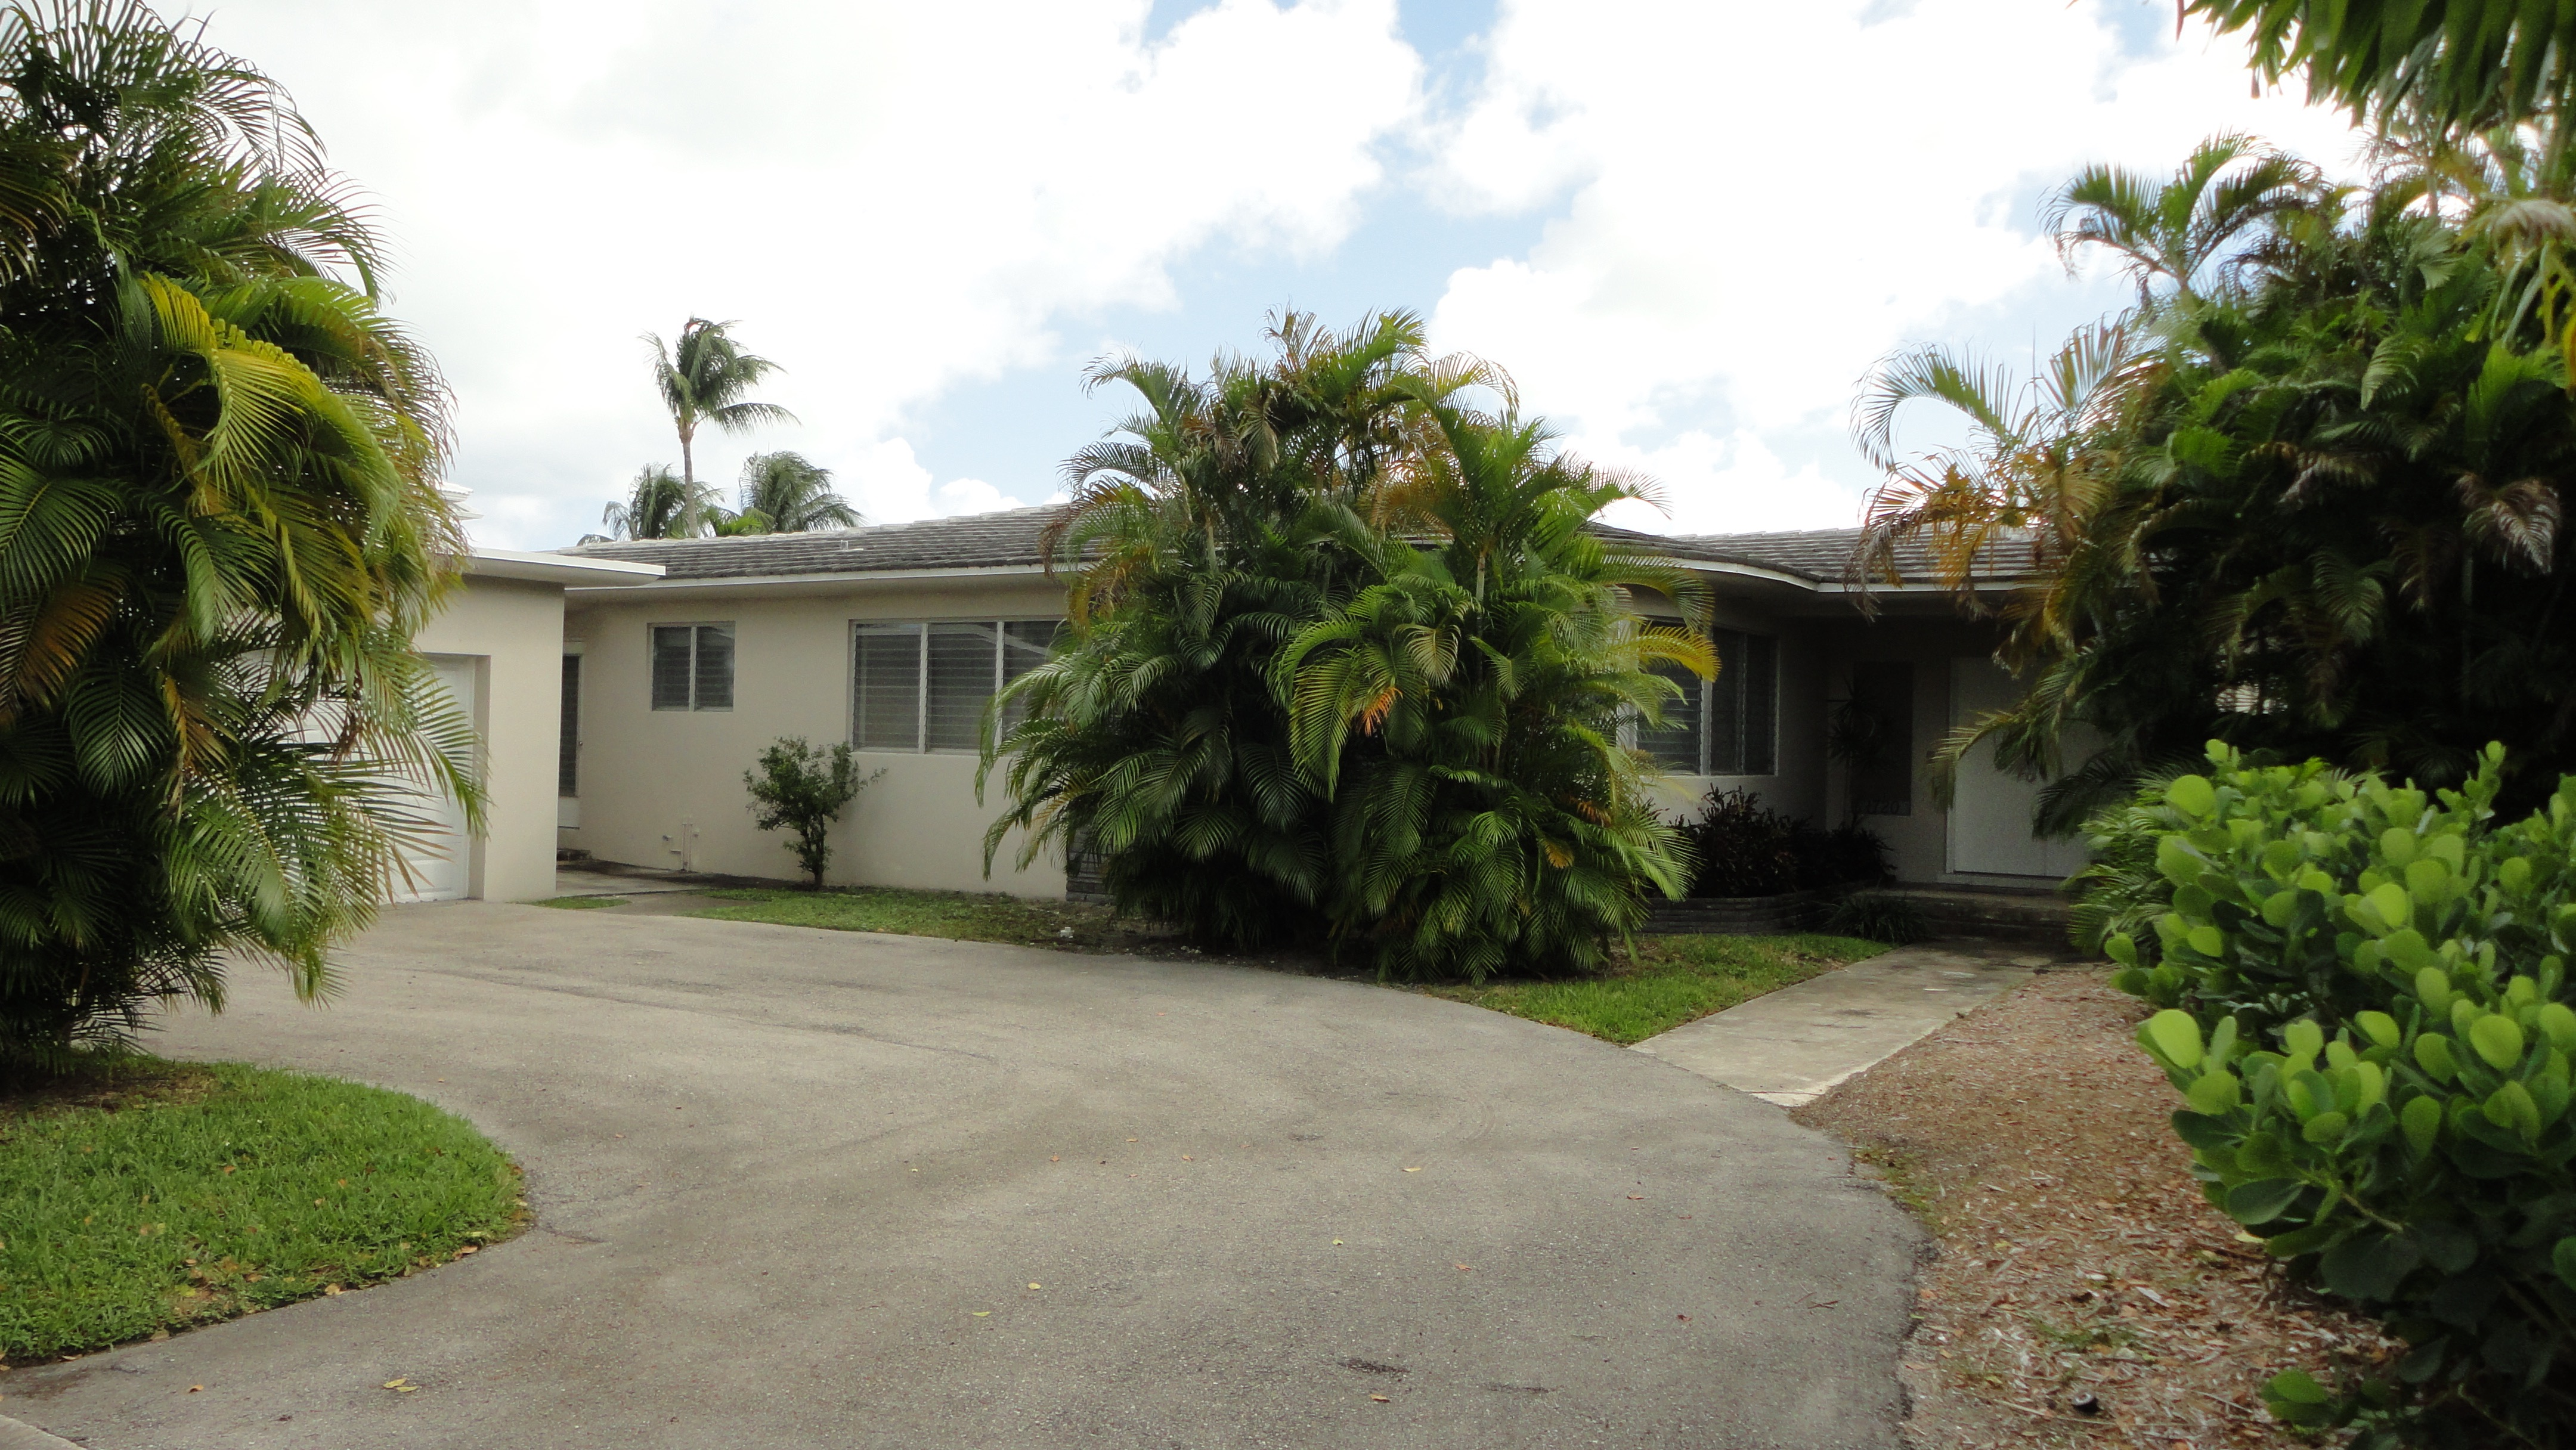 Property For Sale at 1720 Daytonia Rd